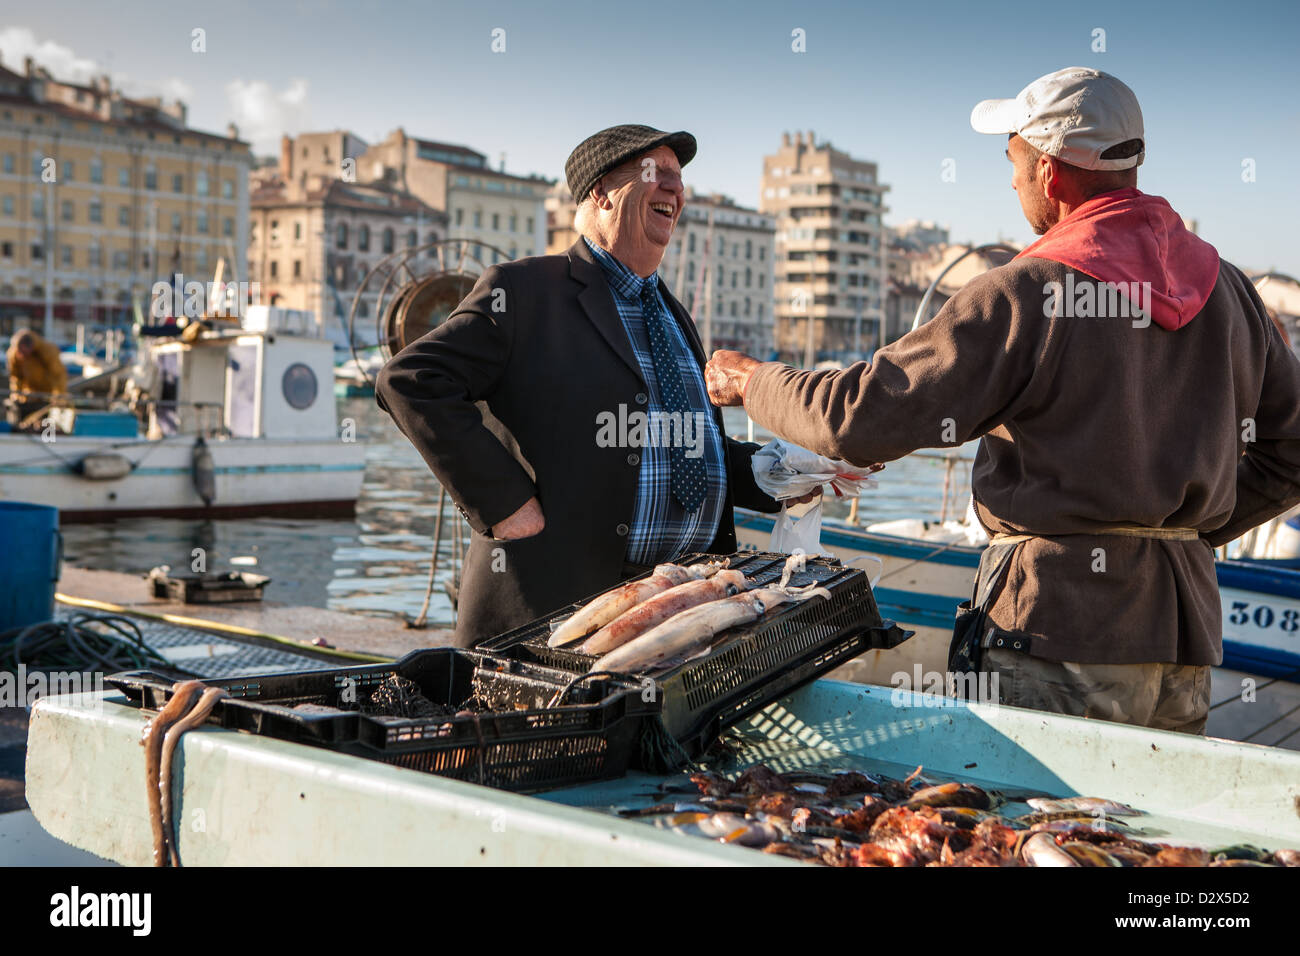 fish market in the old port, Marseille - Stock Image